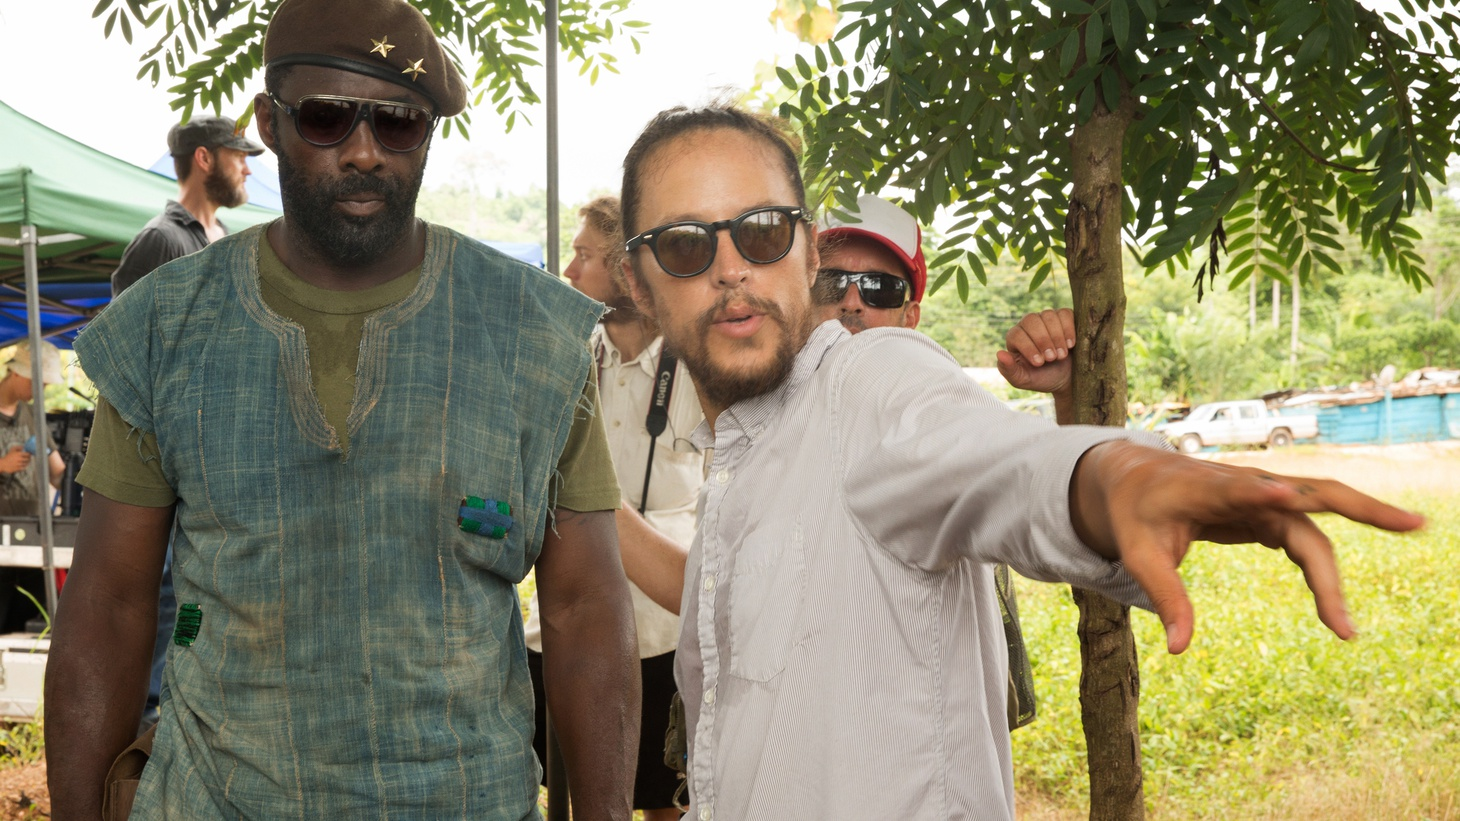 WEB EXCLUSIVE: Filmmaker Cary Fukunaga joins Elvis Mitchell to discuss the true vulnerability of family in Netflix's Beasts of No Nation.